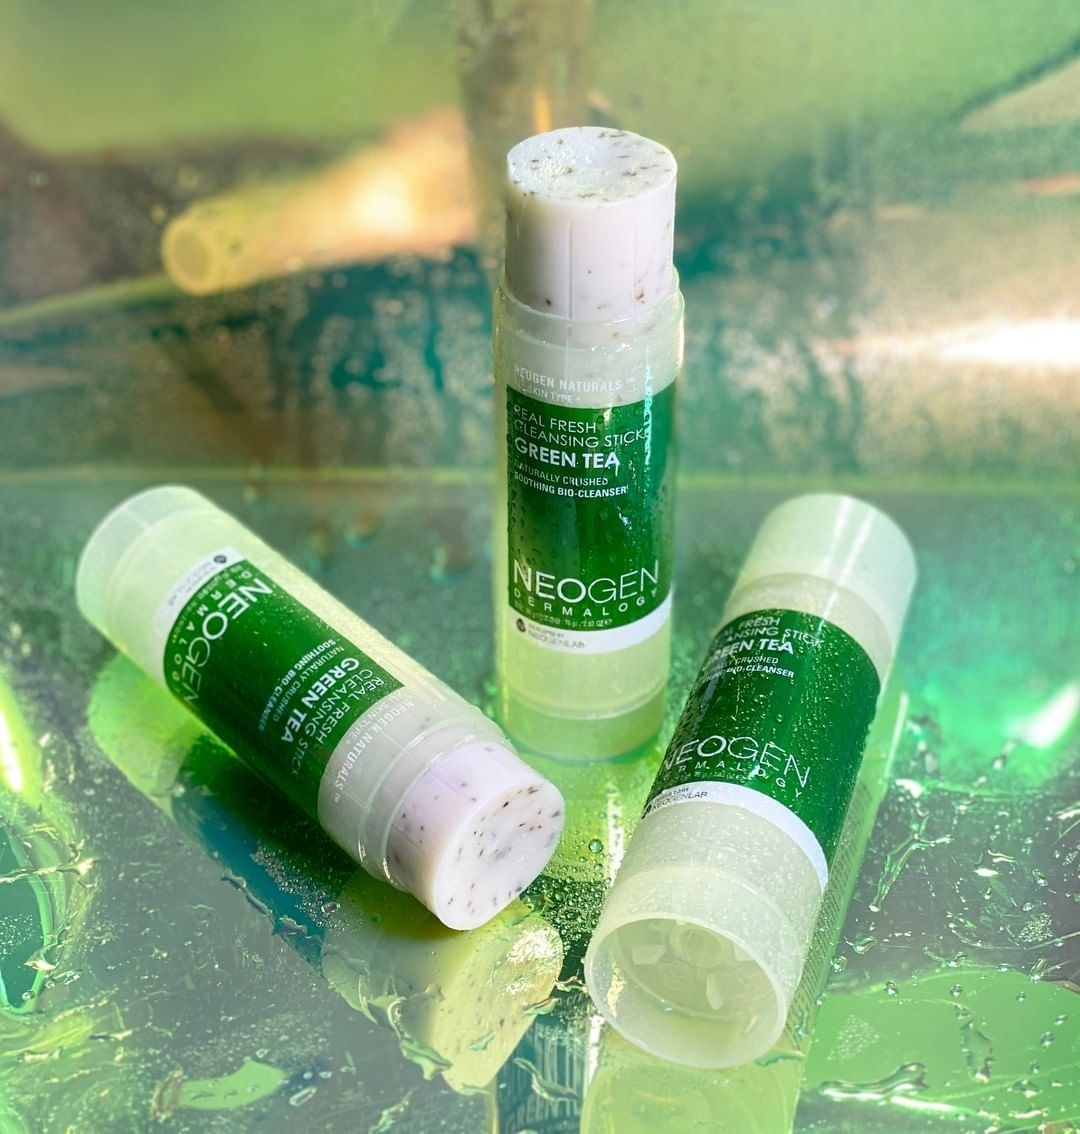 the green tea cleansing sticks